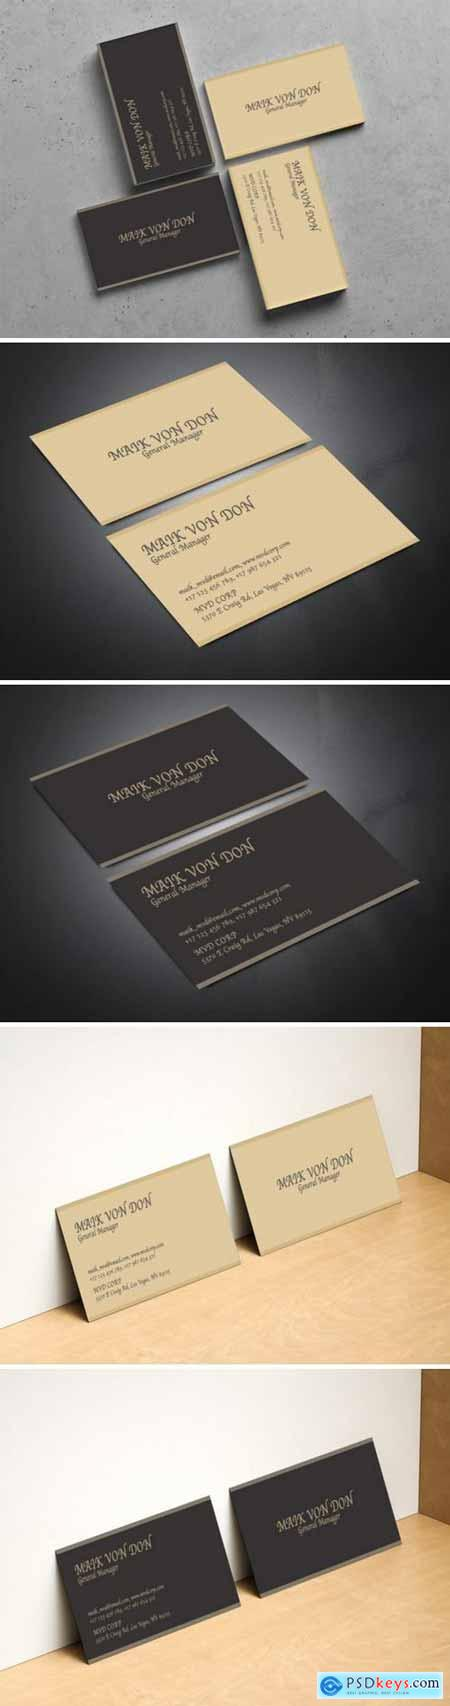 Business Card 939427